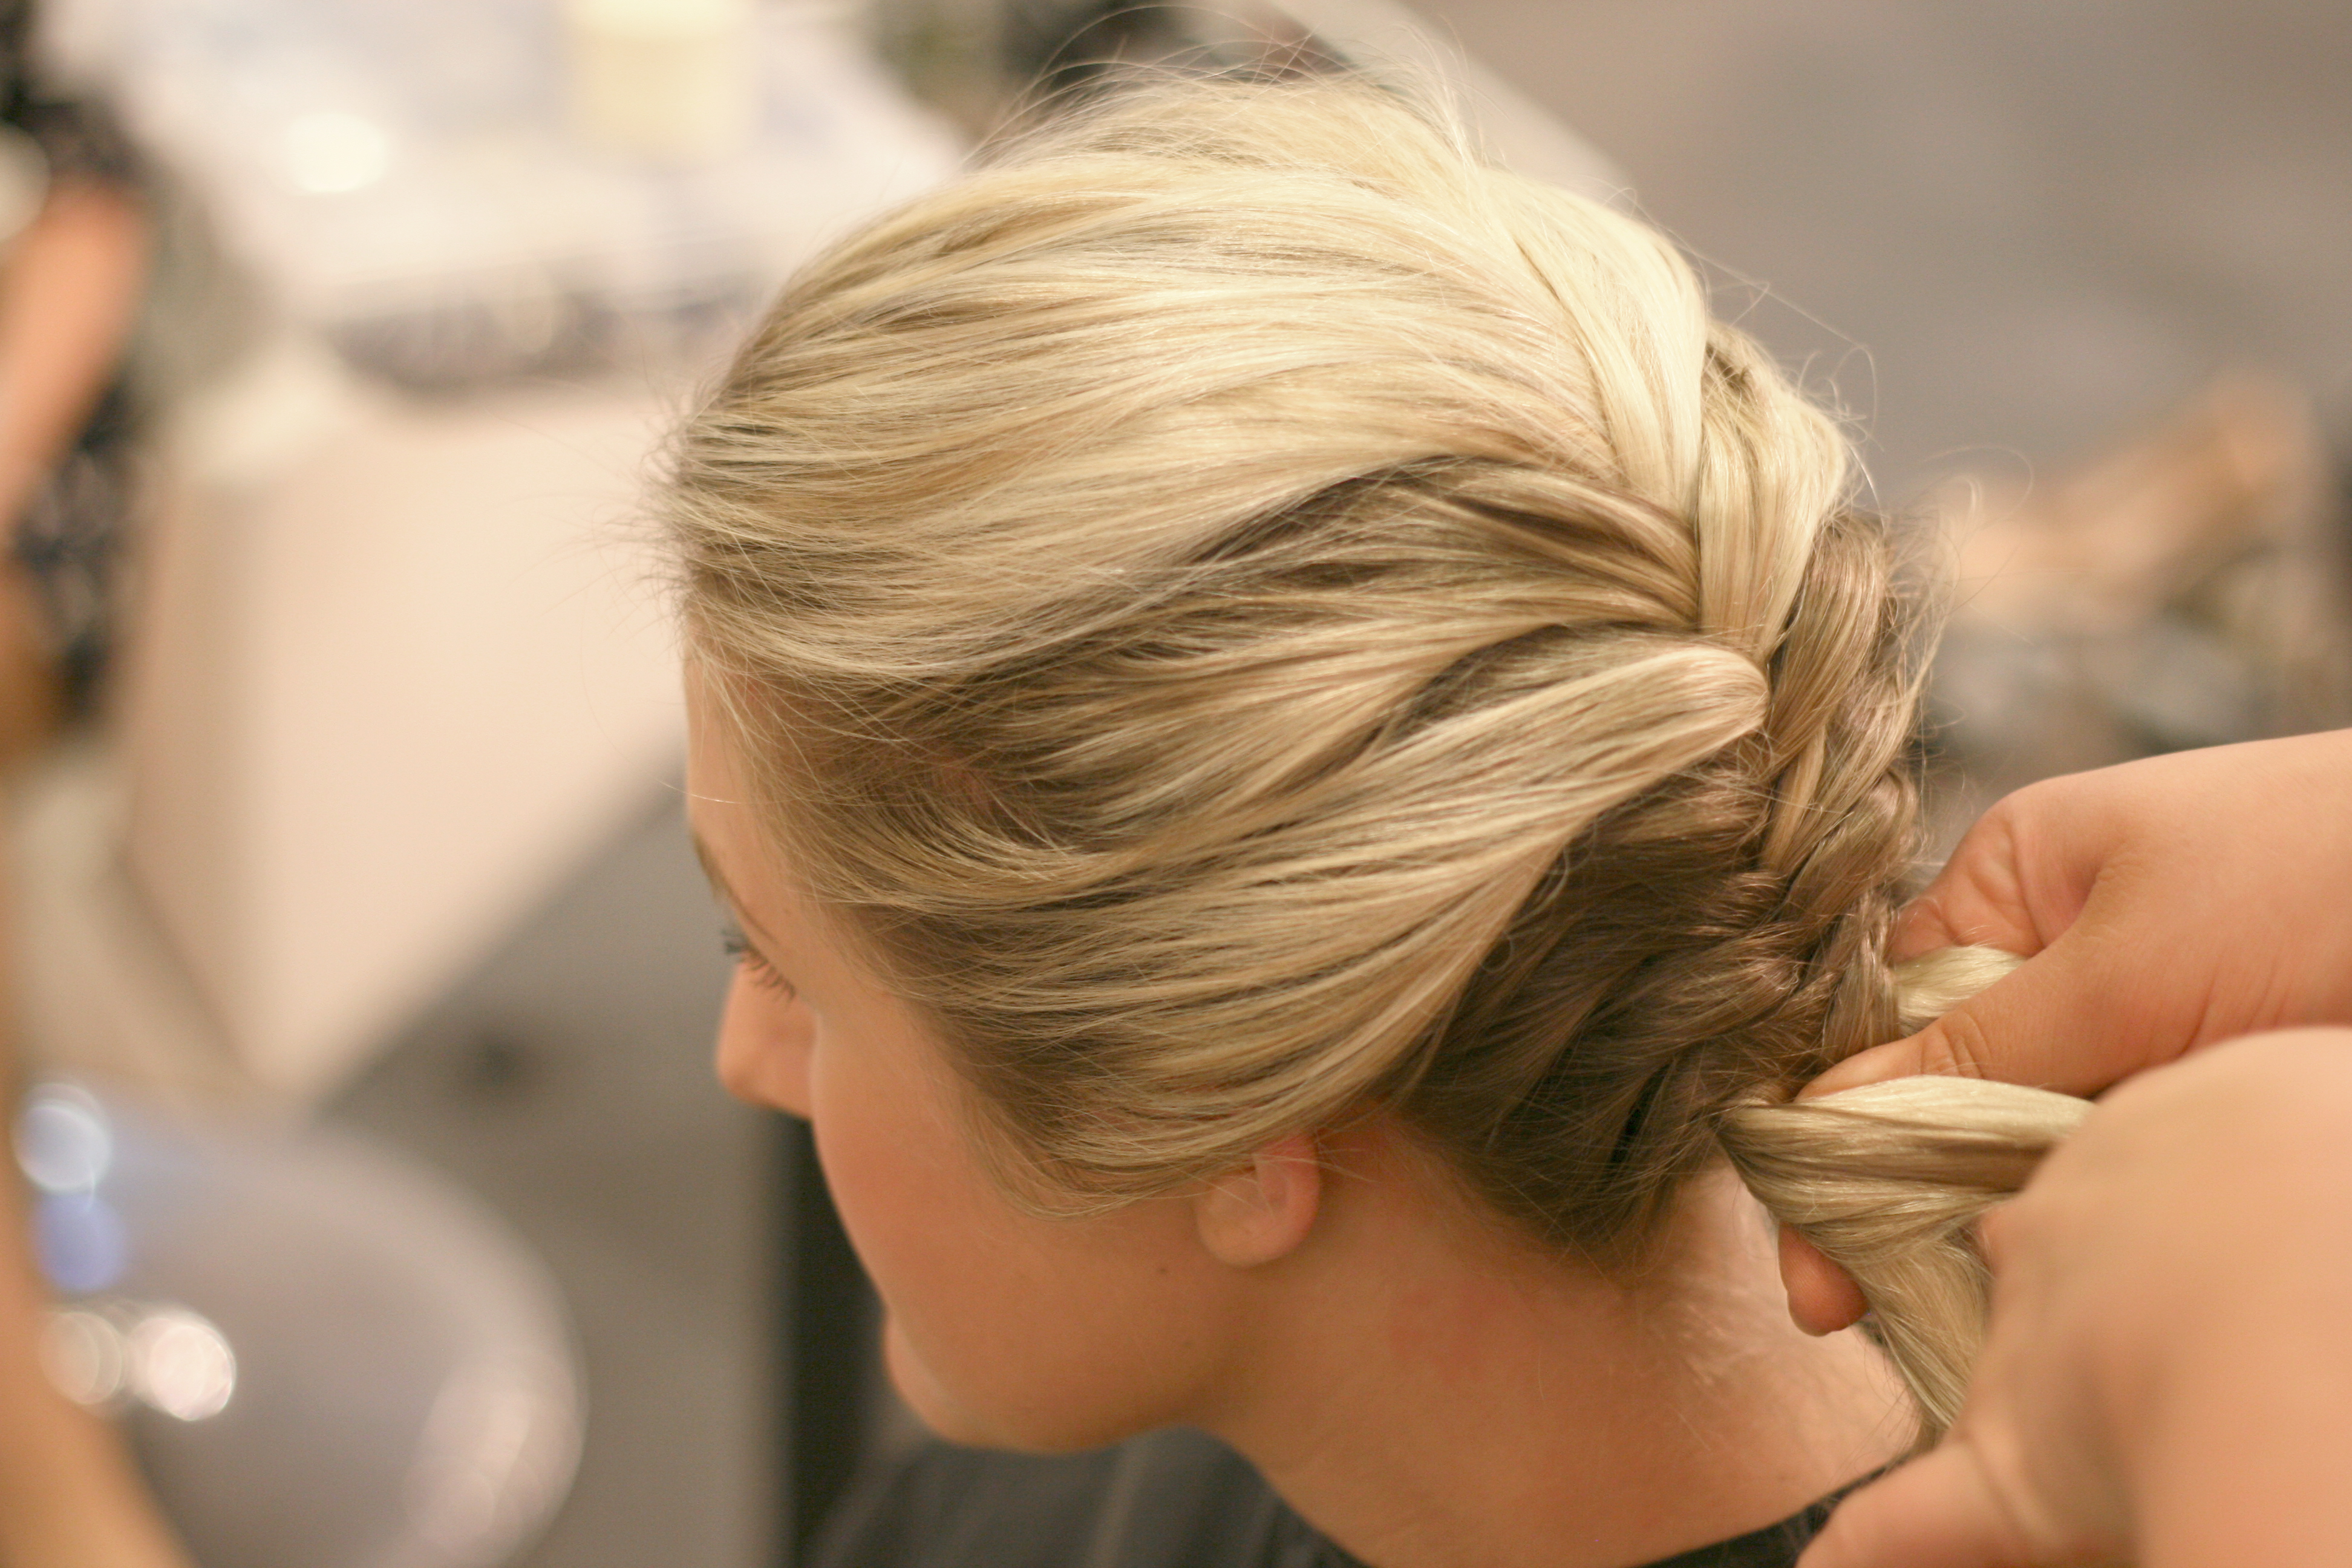 The Art of the Braid